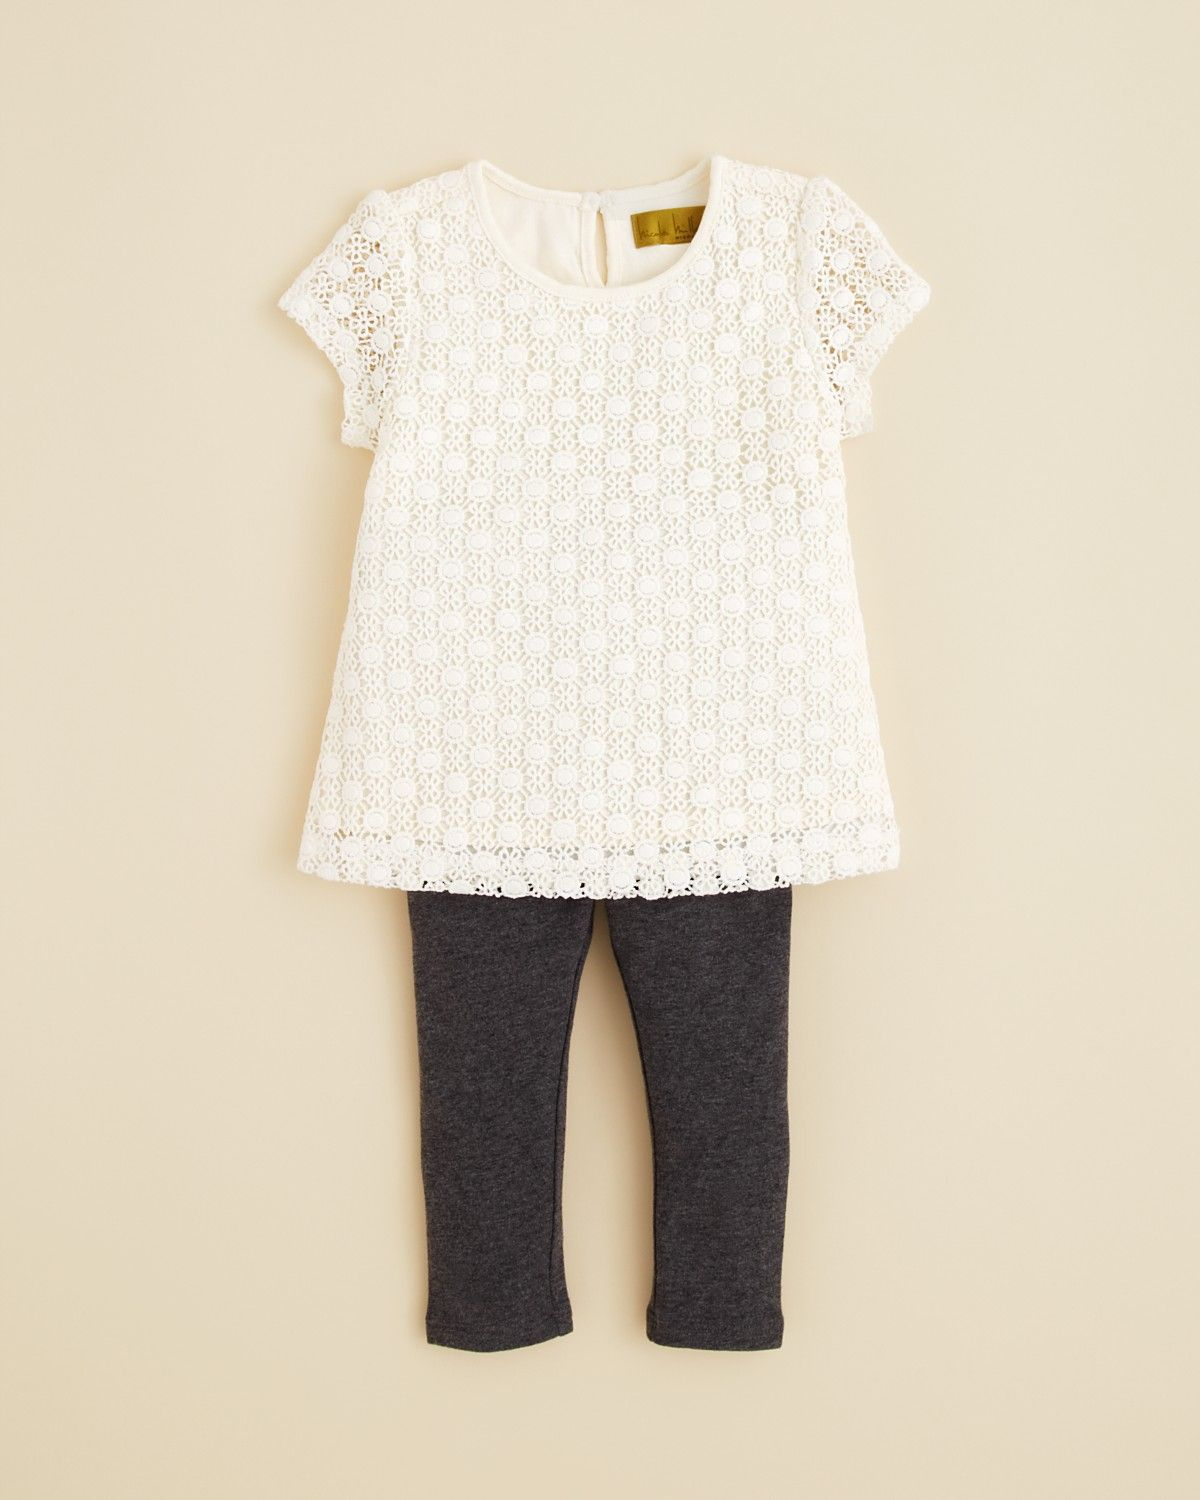 Nicole Miller Infant Girls' Knit Lace Top & Leggings Set - Sizes 12-24 Months | Bloomingdale's